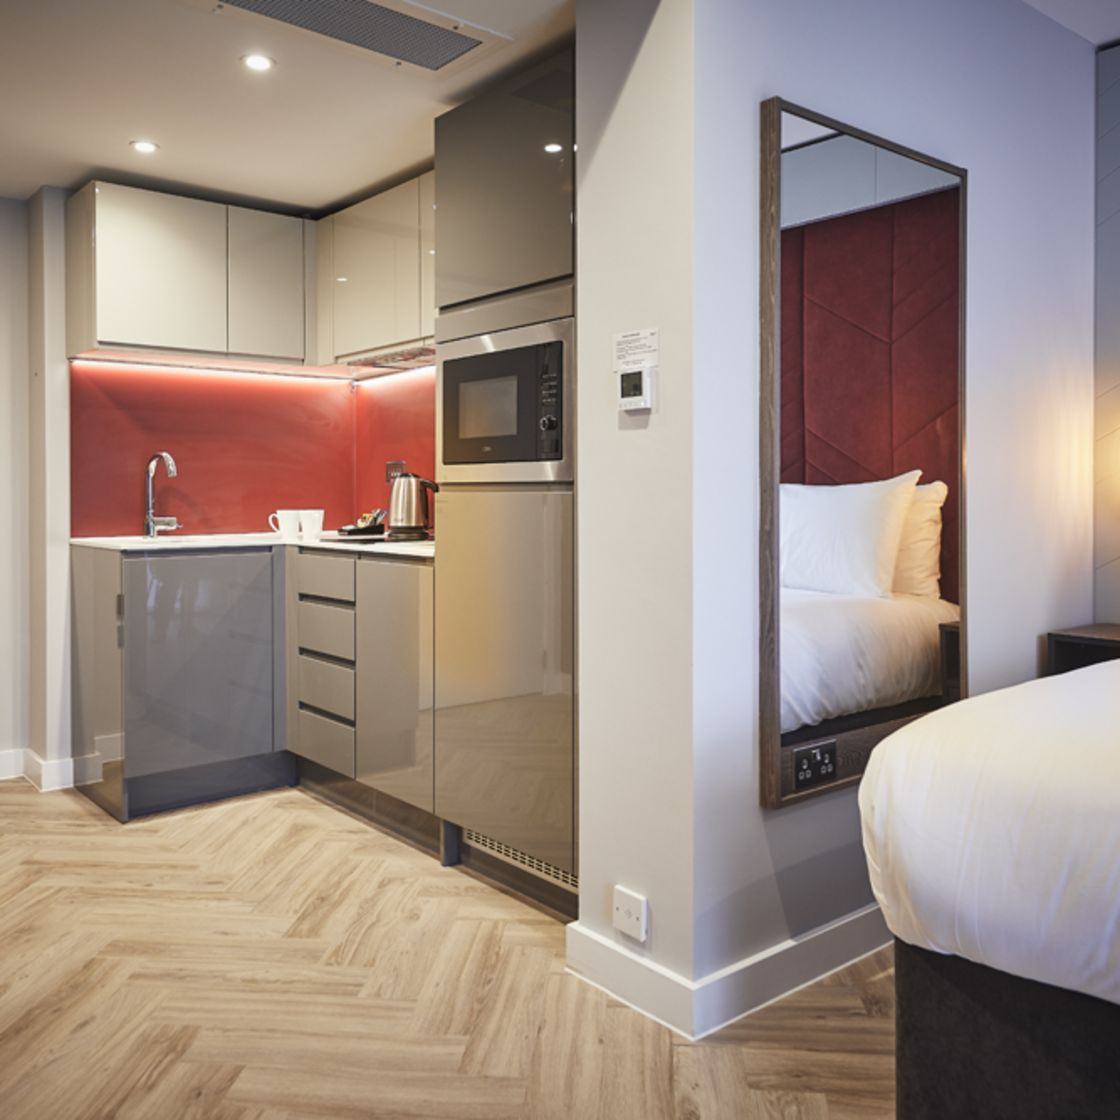 Grande Studio Student Apartment in York. Fully equipped kitchen with microwave/oven.